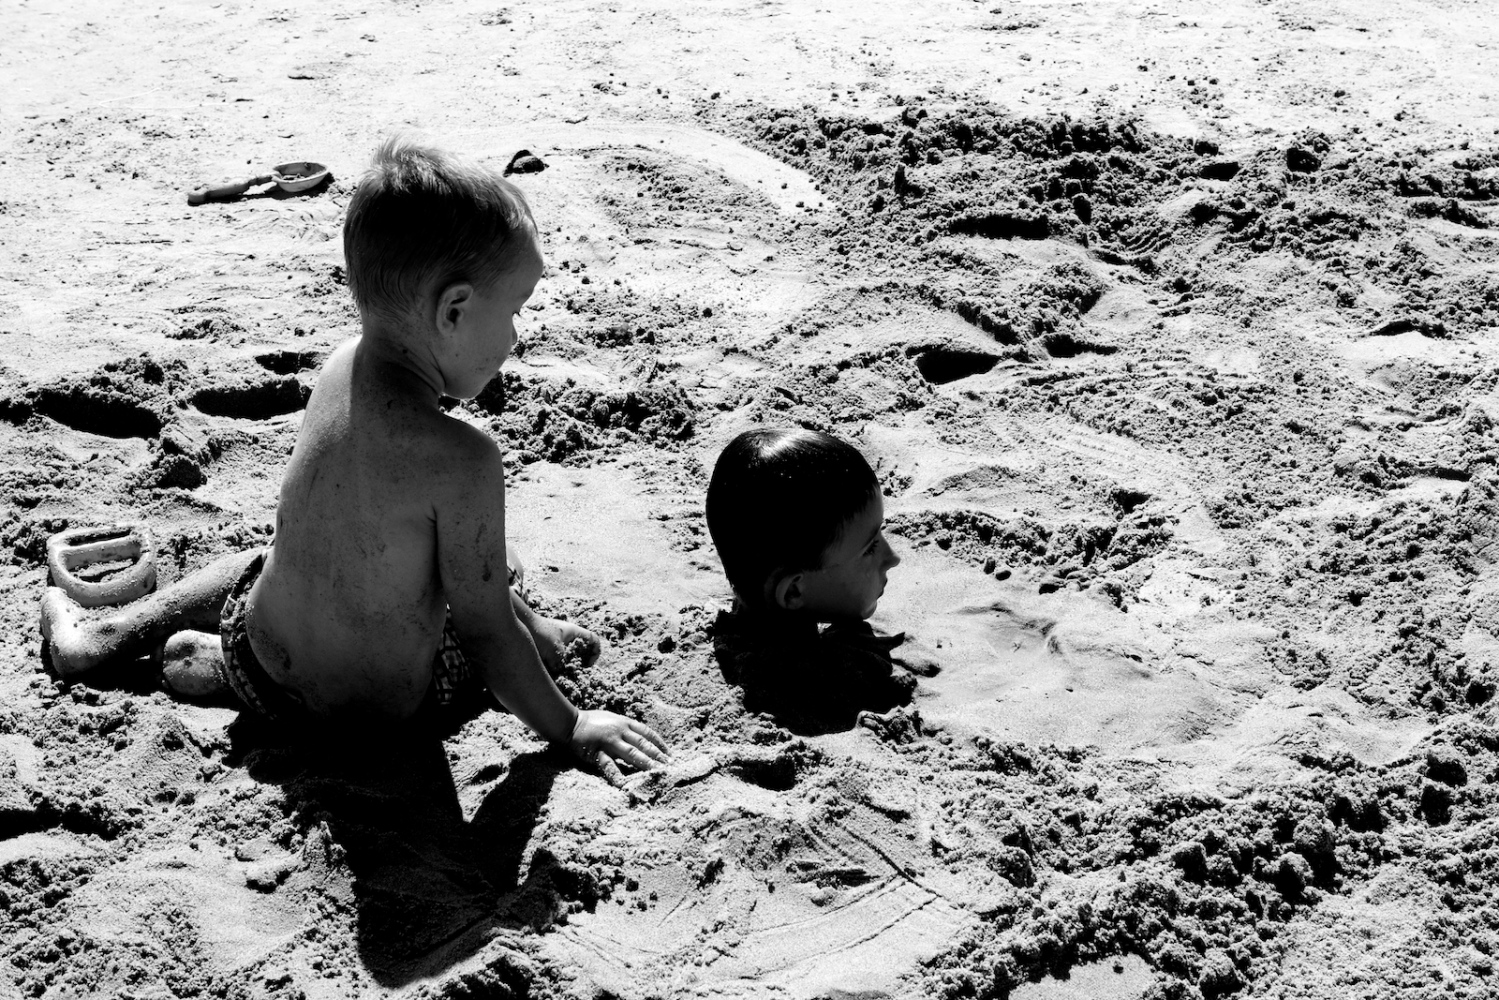 Head in the Sand. Coney Island, NY, Summer 2011